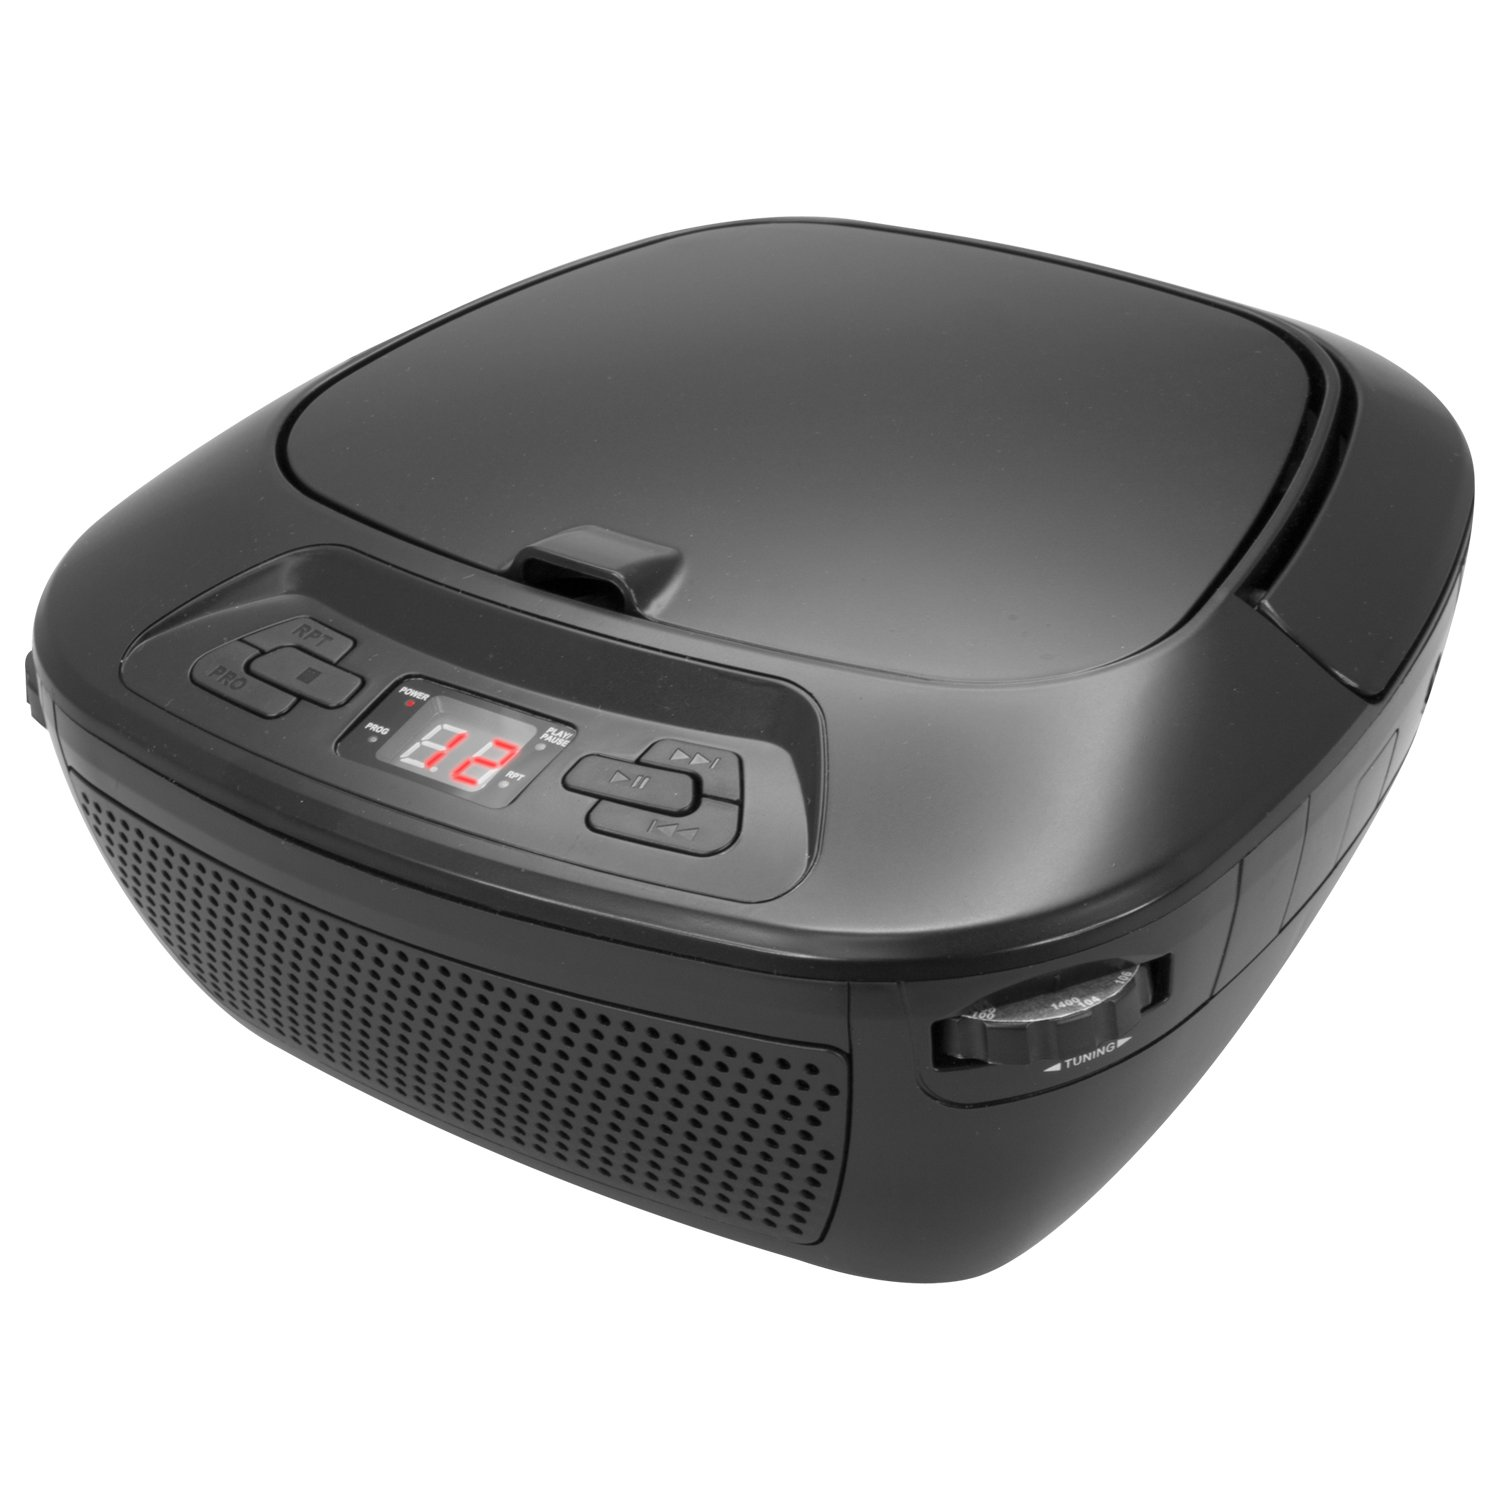 GPX Portable Bluetooth Boombox/CD Player, Requires 6 C Batteries - Not Included, Black - GPXBCB117B Inc.